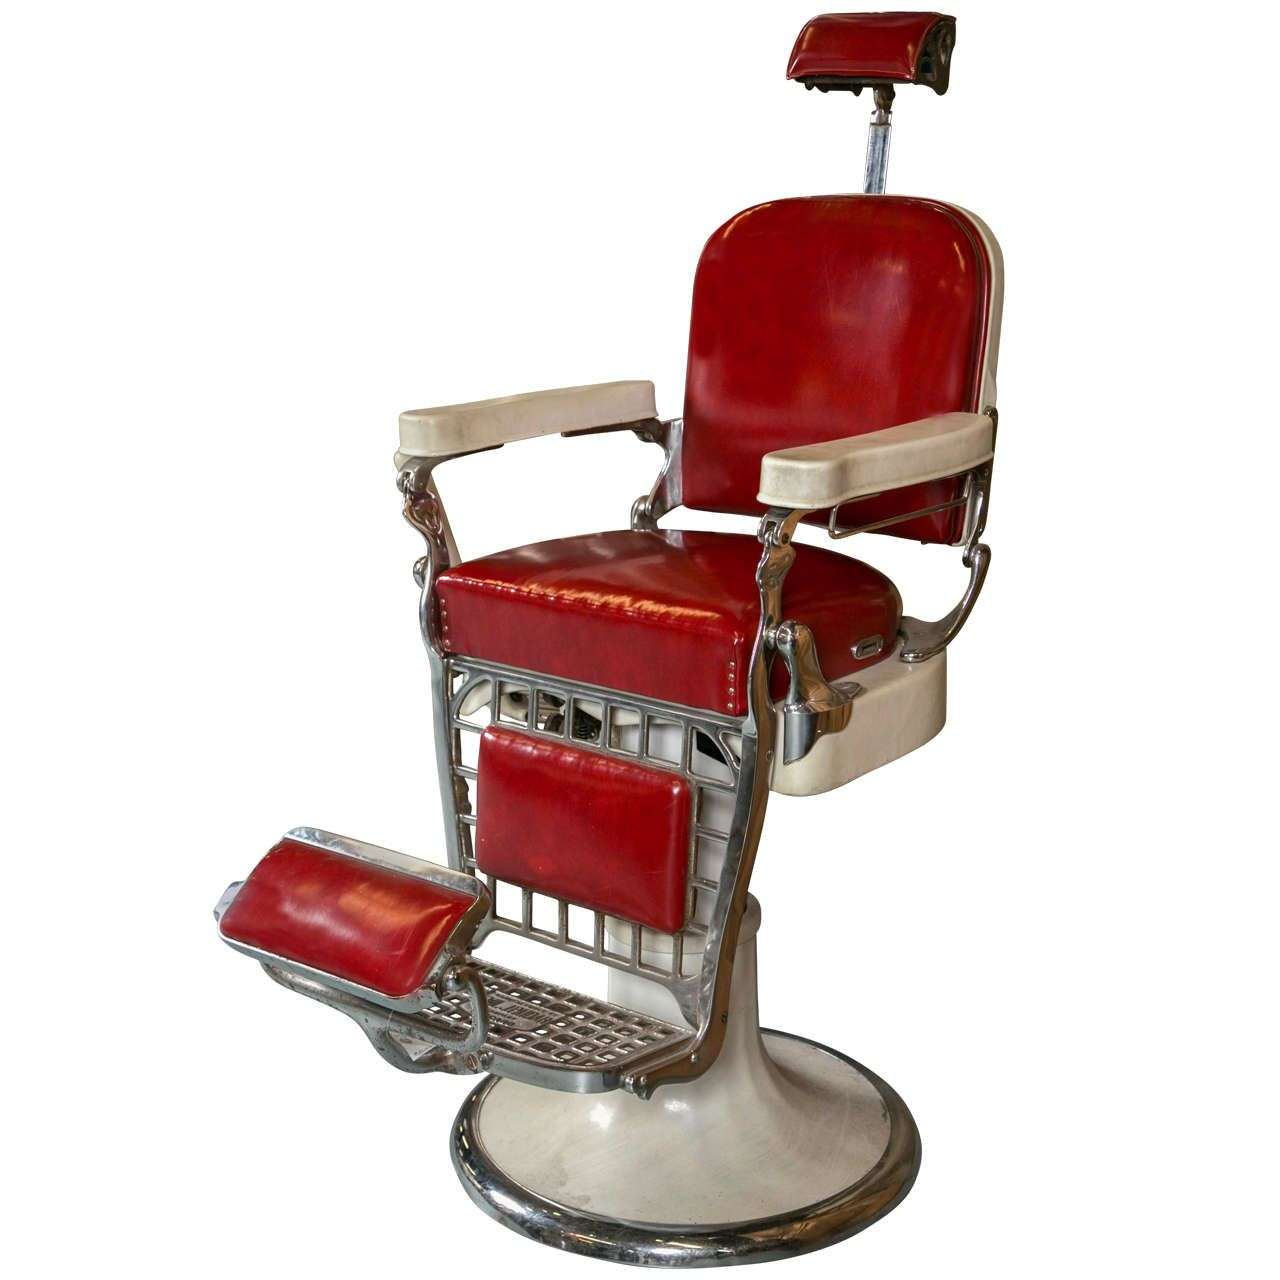 Antique Emil J. Paidar Barber Chair - Antique Emil J. Paidar Barber Chair Men Cave